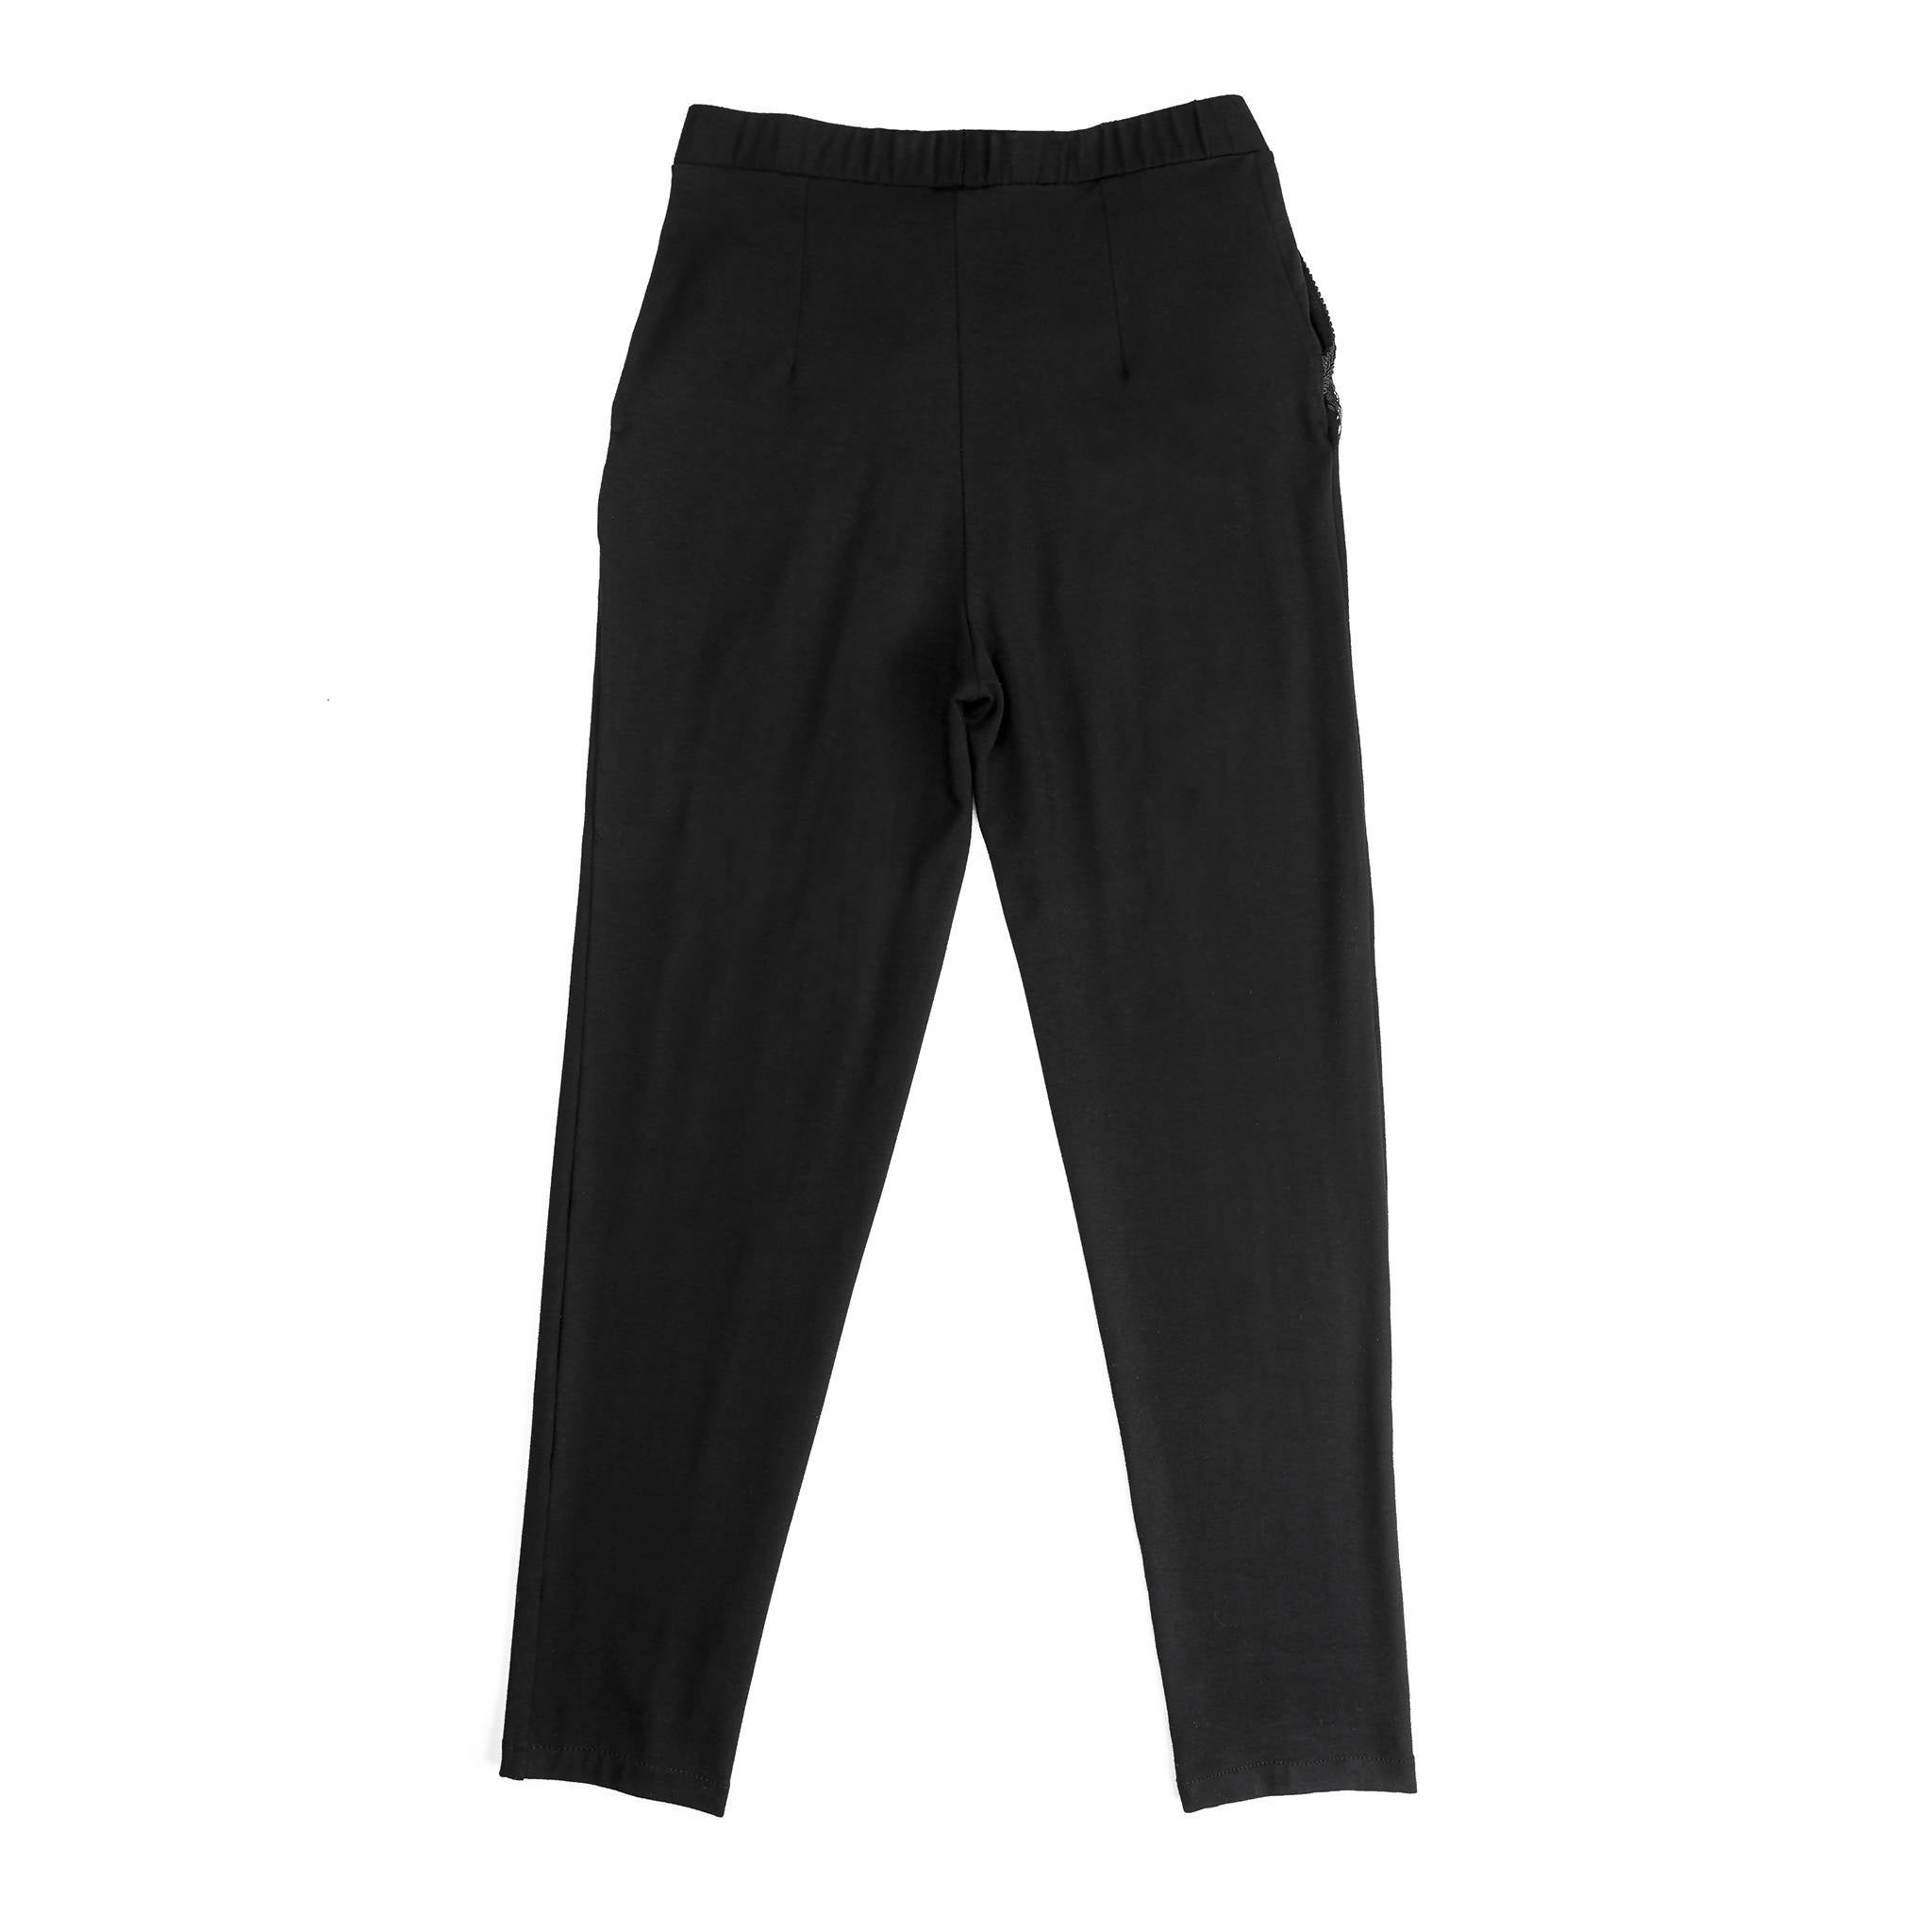 Bamboo fabric back comfortable pants eco fashion sustainable